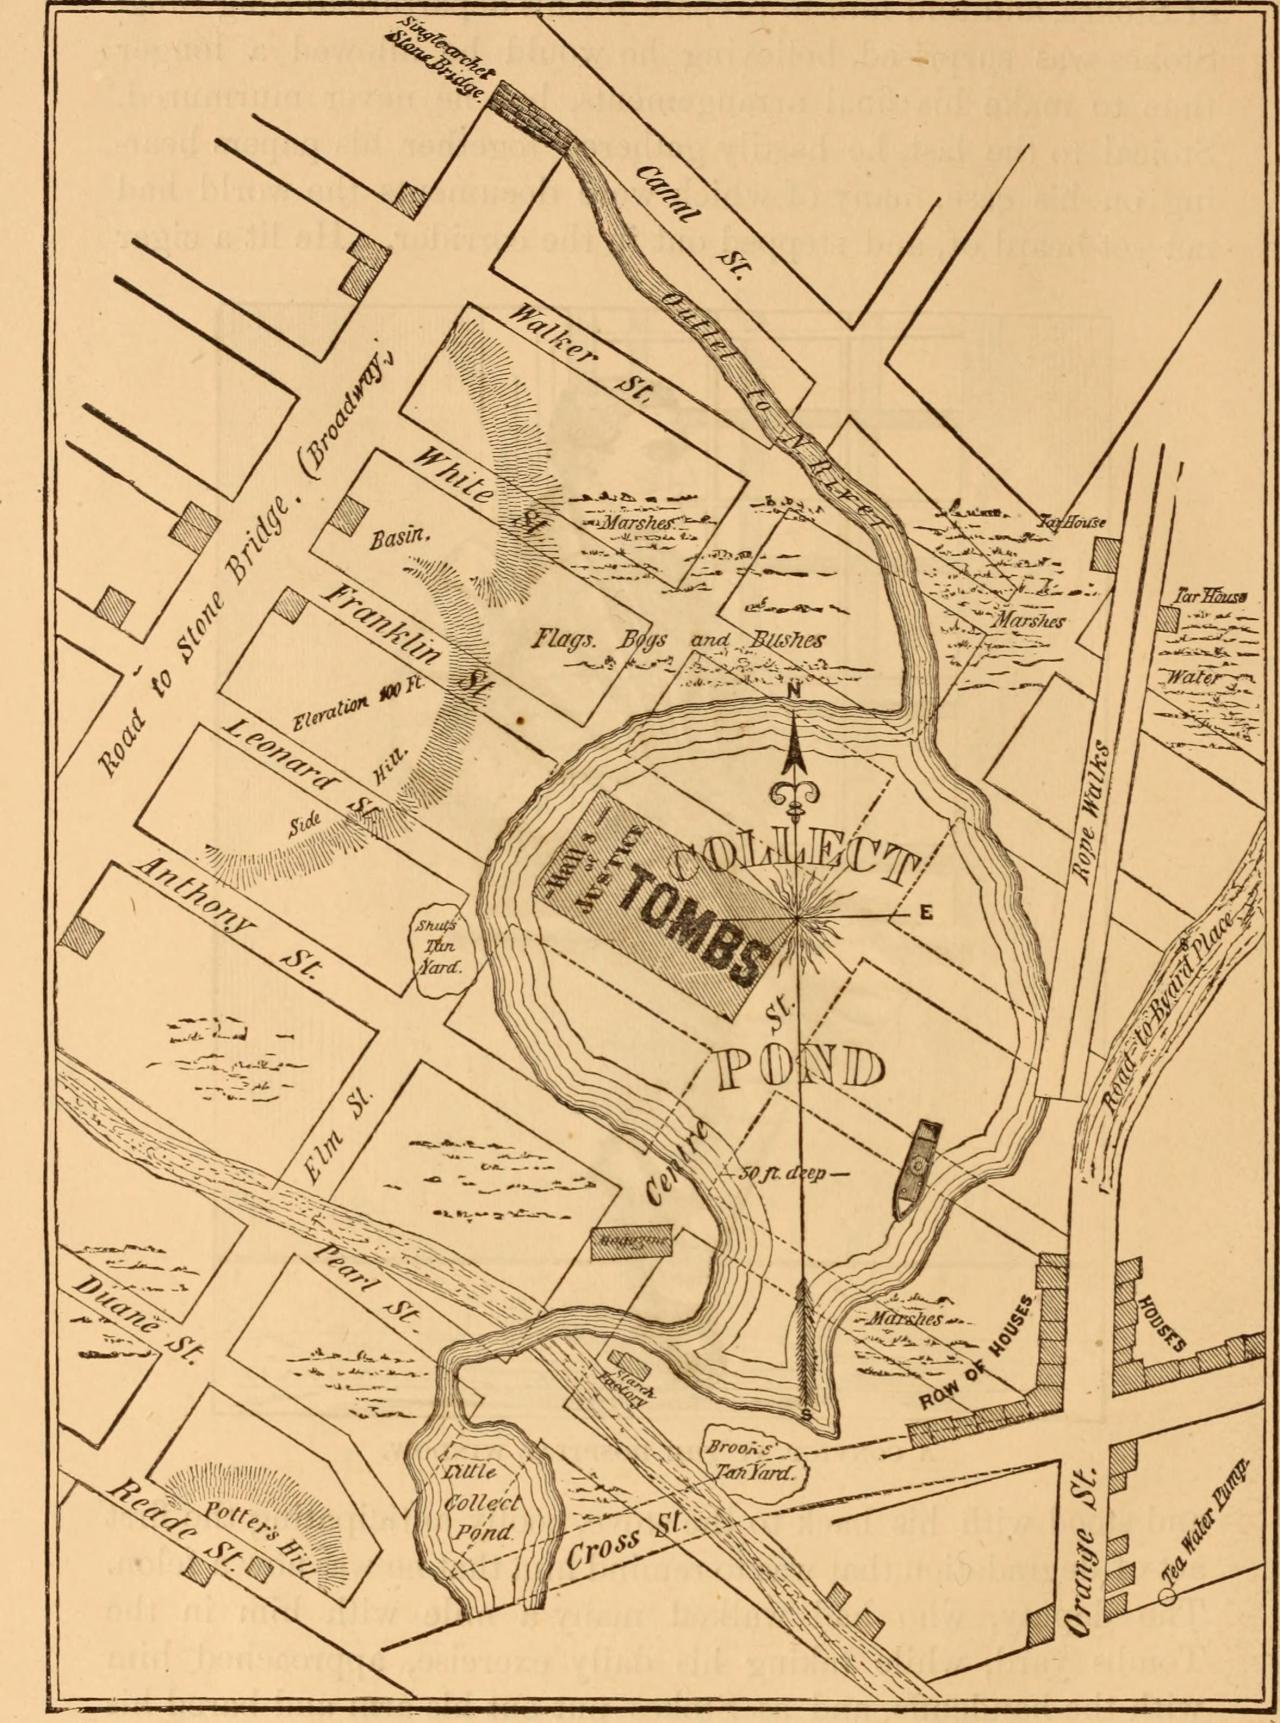 Map Of Collect Pond Giving The Present Site Of The Tombs As Drawn By John Canter The Counterfeiter 1874